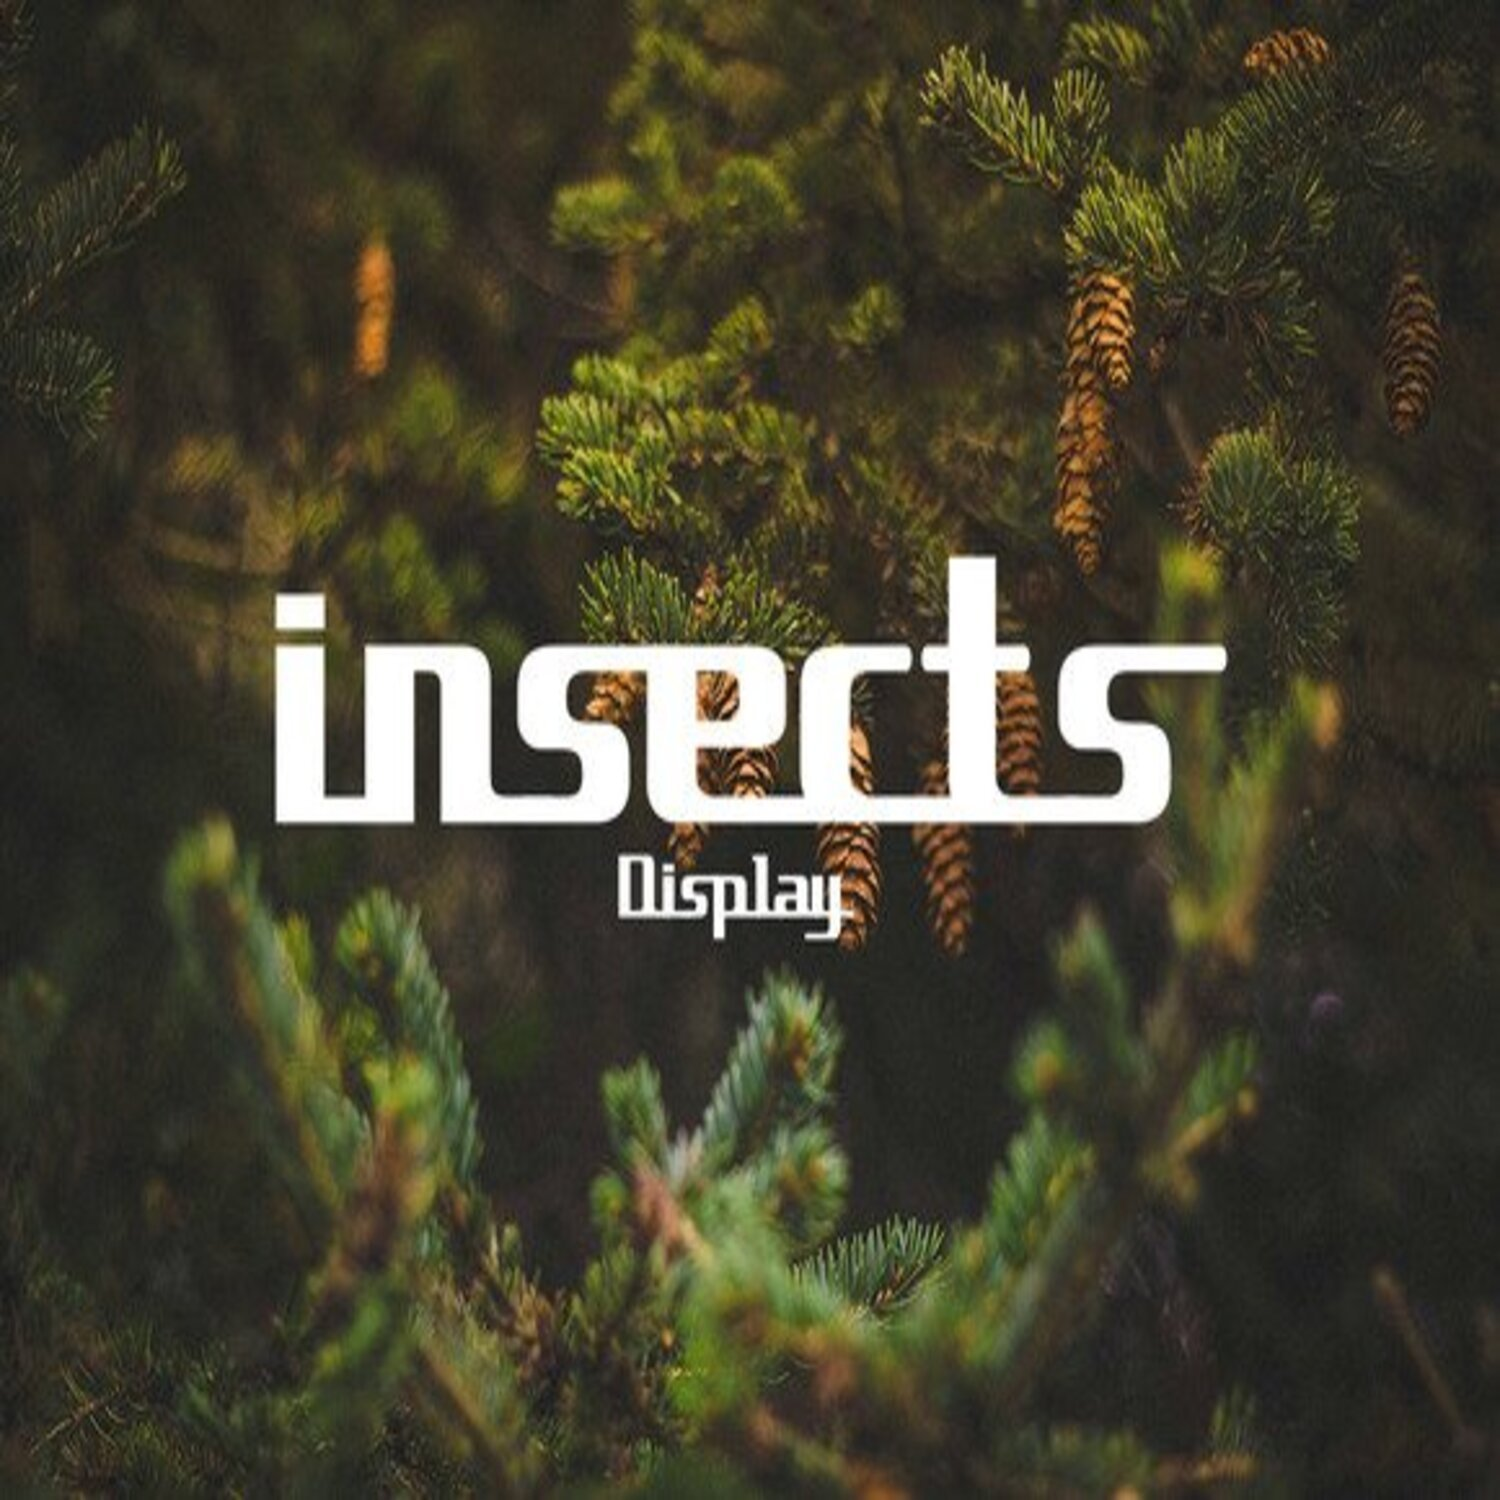 Insects Strong Display Font main cover.